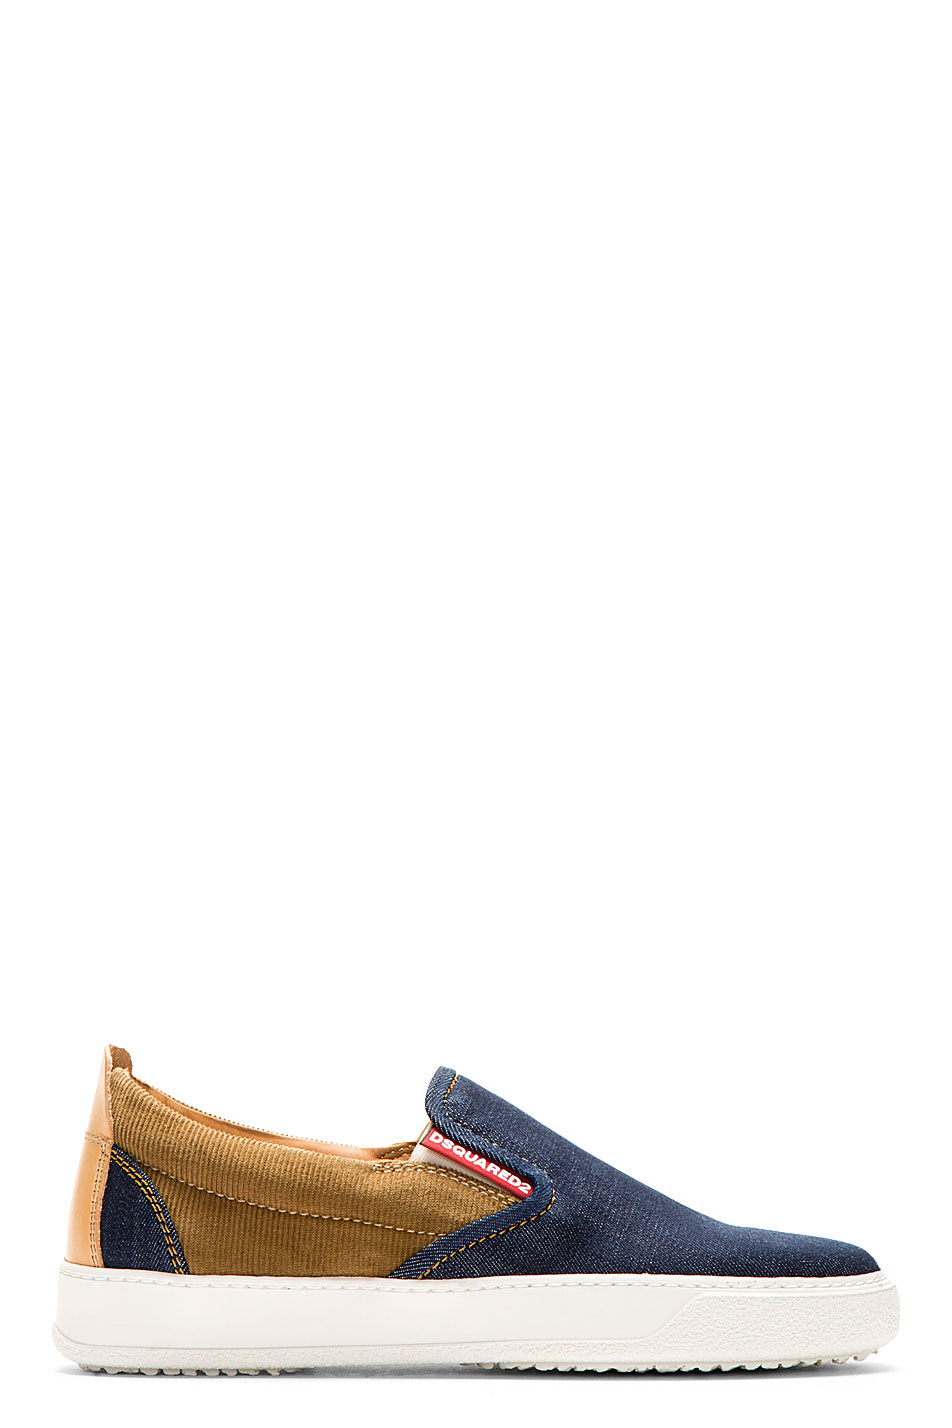 Dsquared2 blue denim and corduroy slip_on sneakers